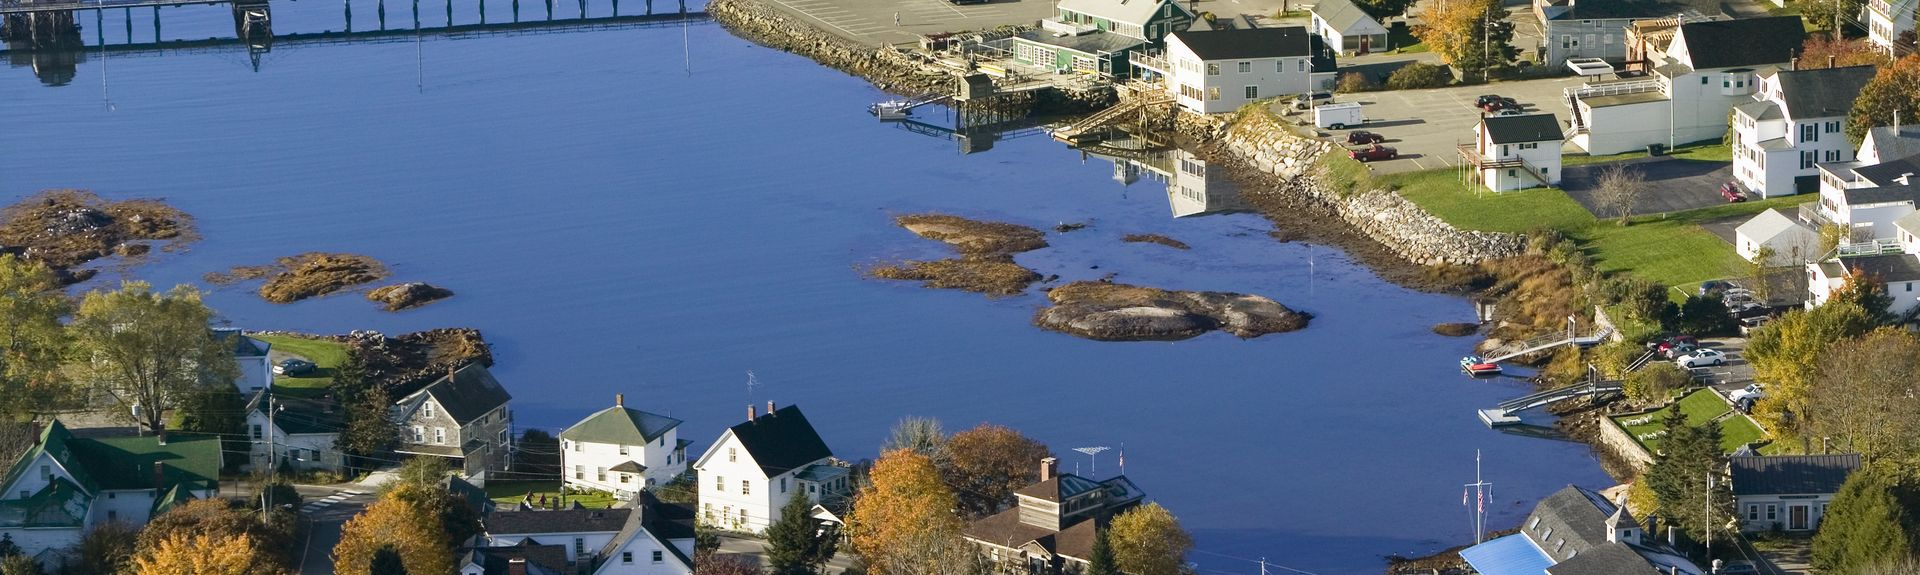 Boothbay Harbor Region, ME, USA